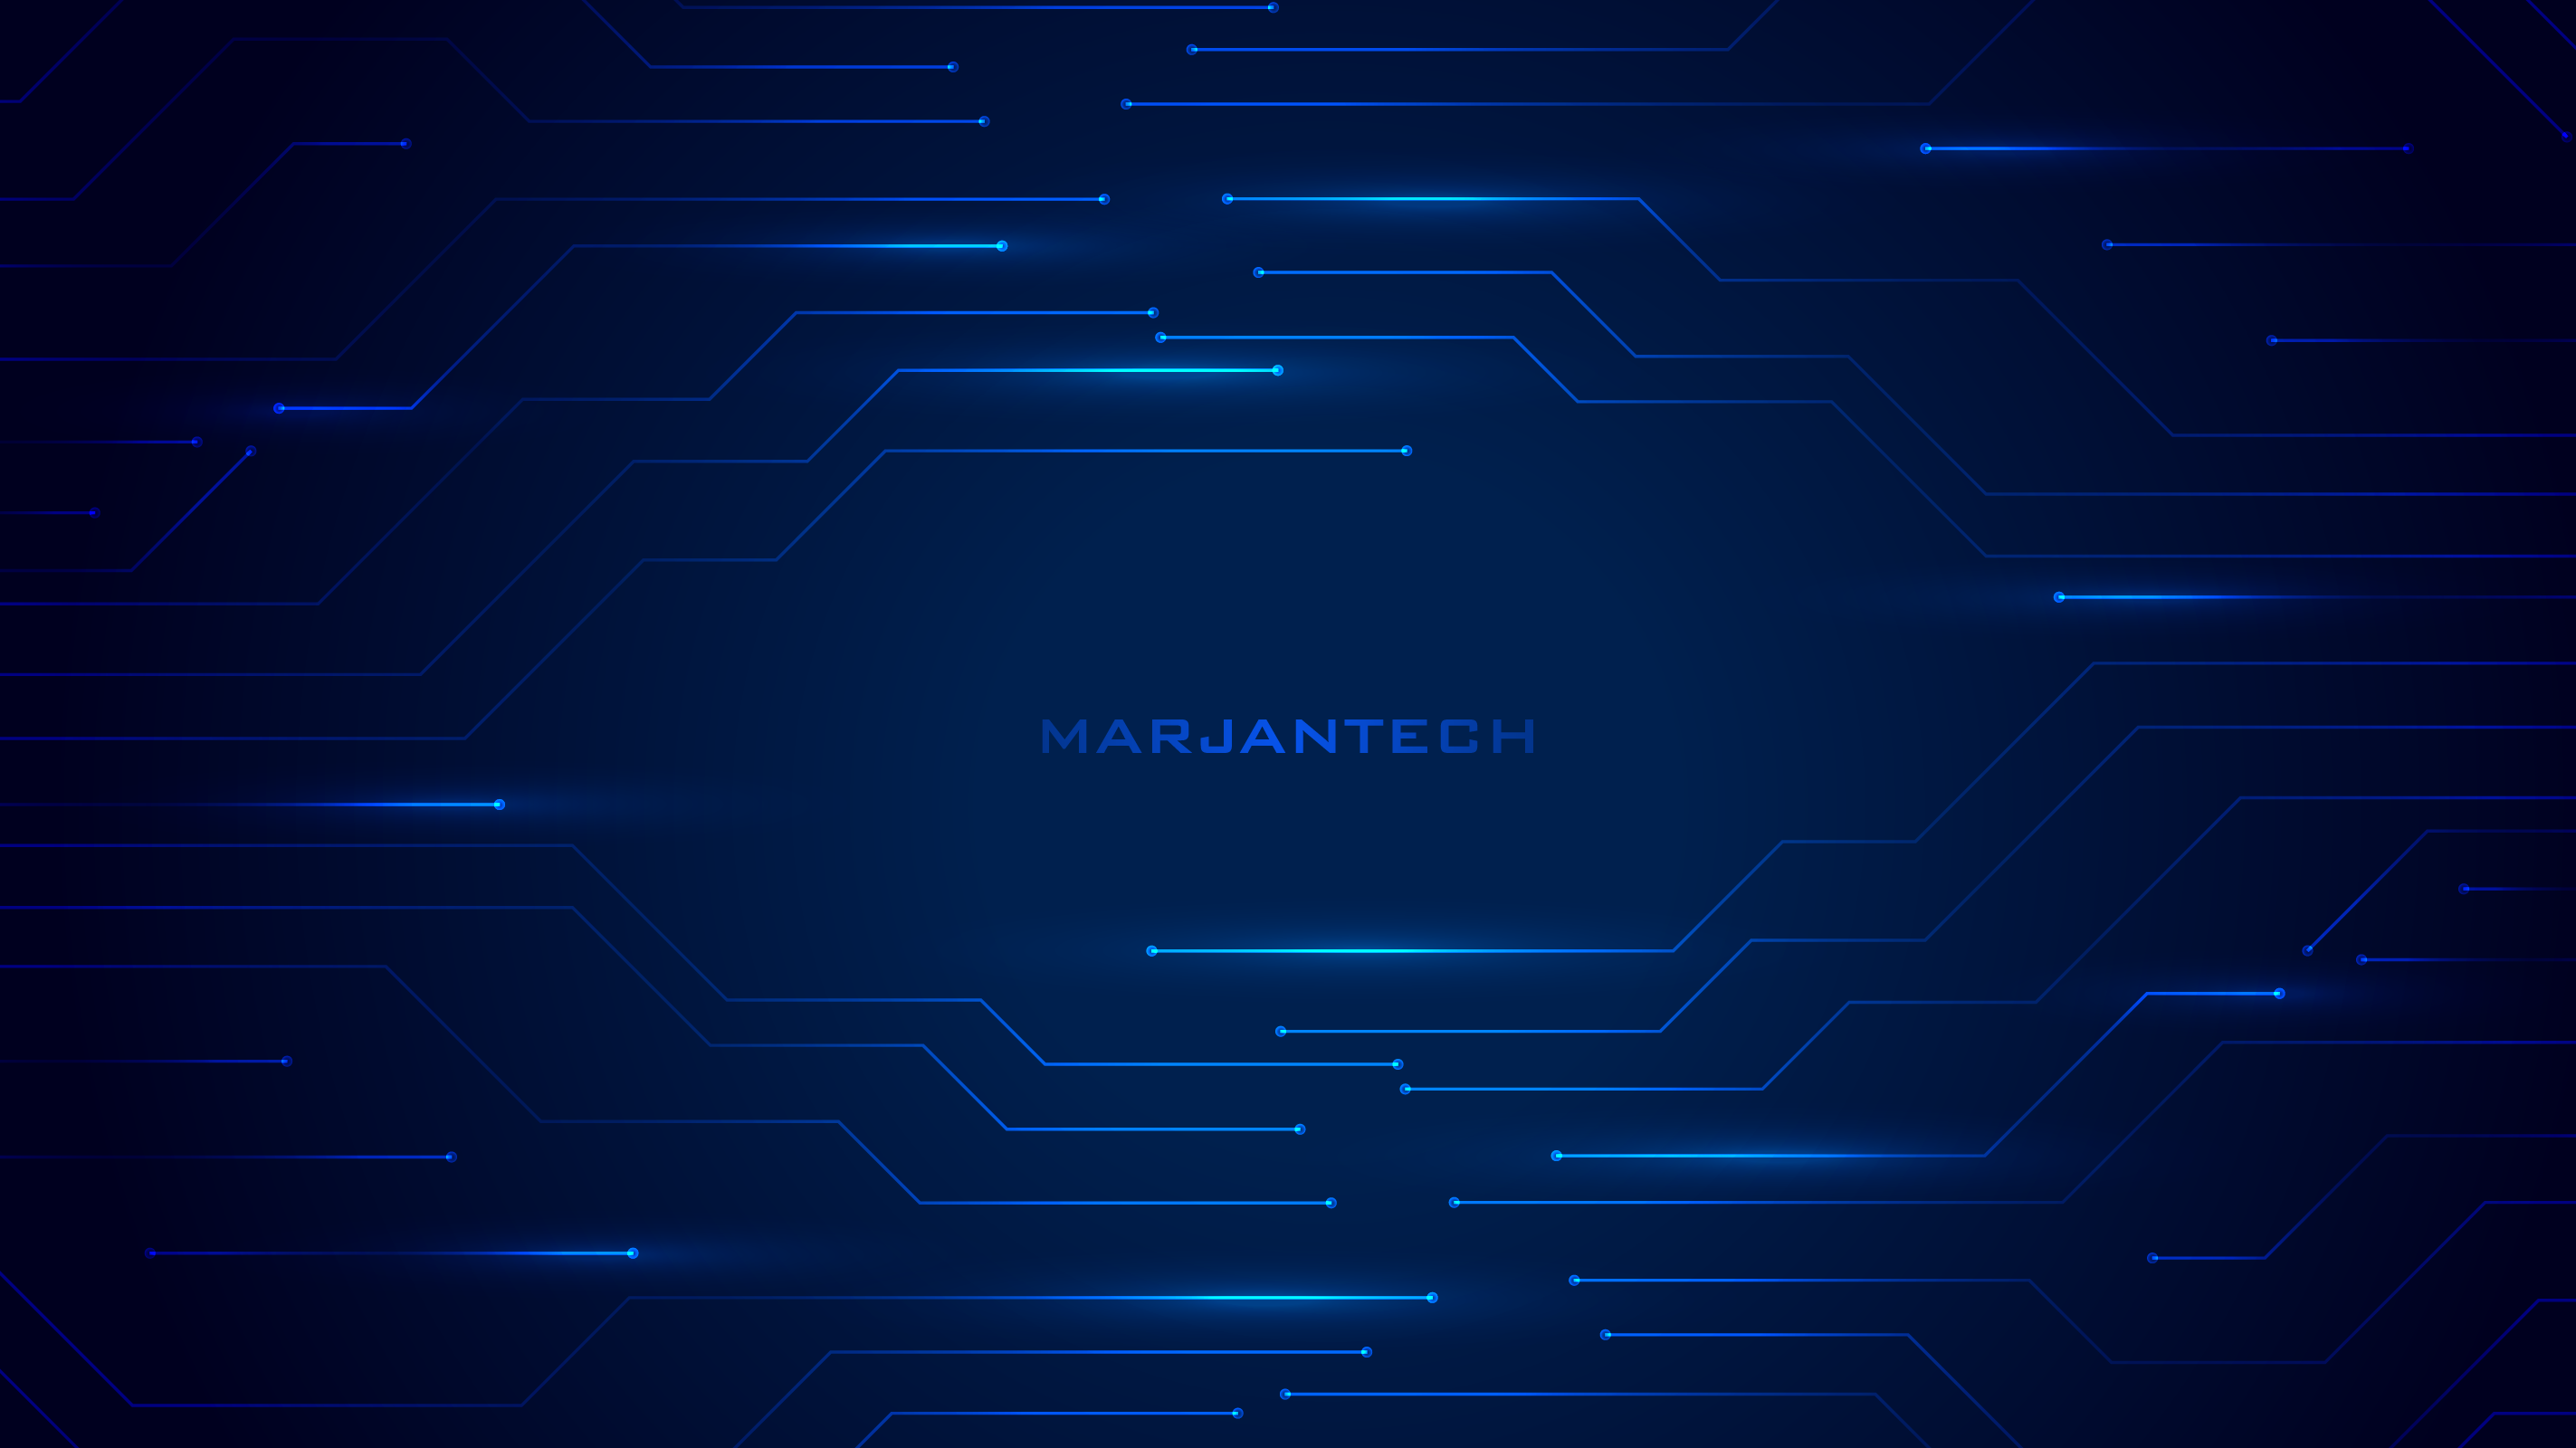 WELCOME TO MARJANTECH